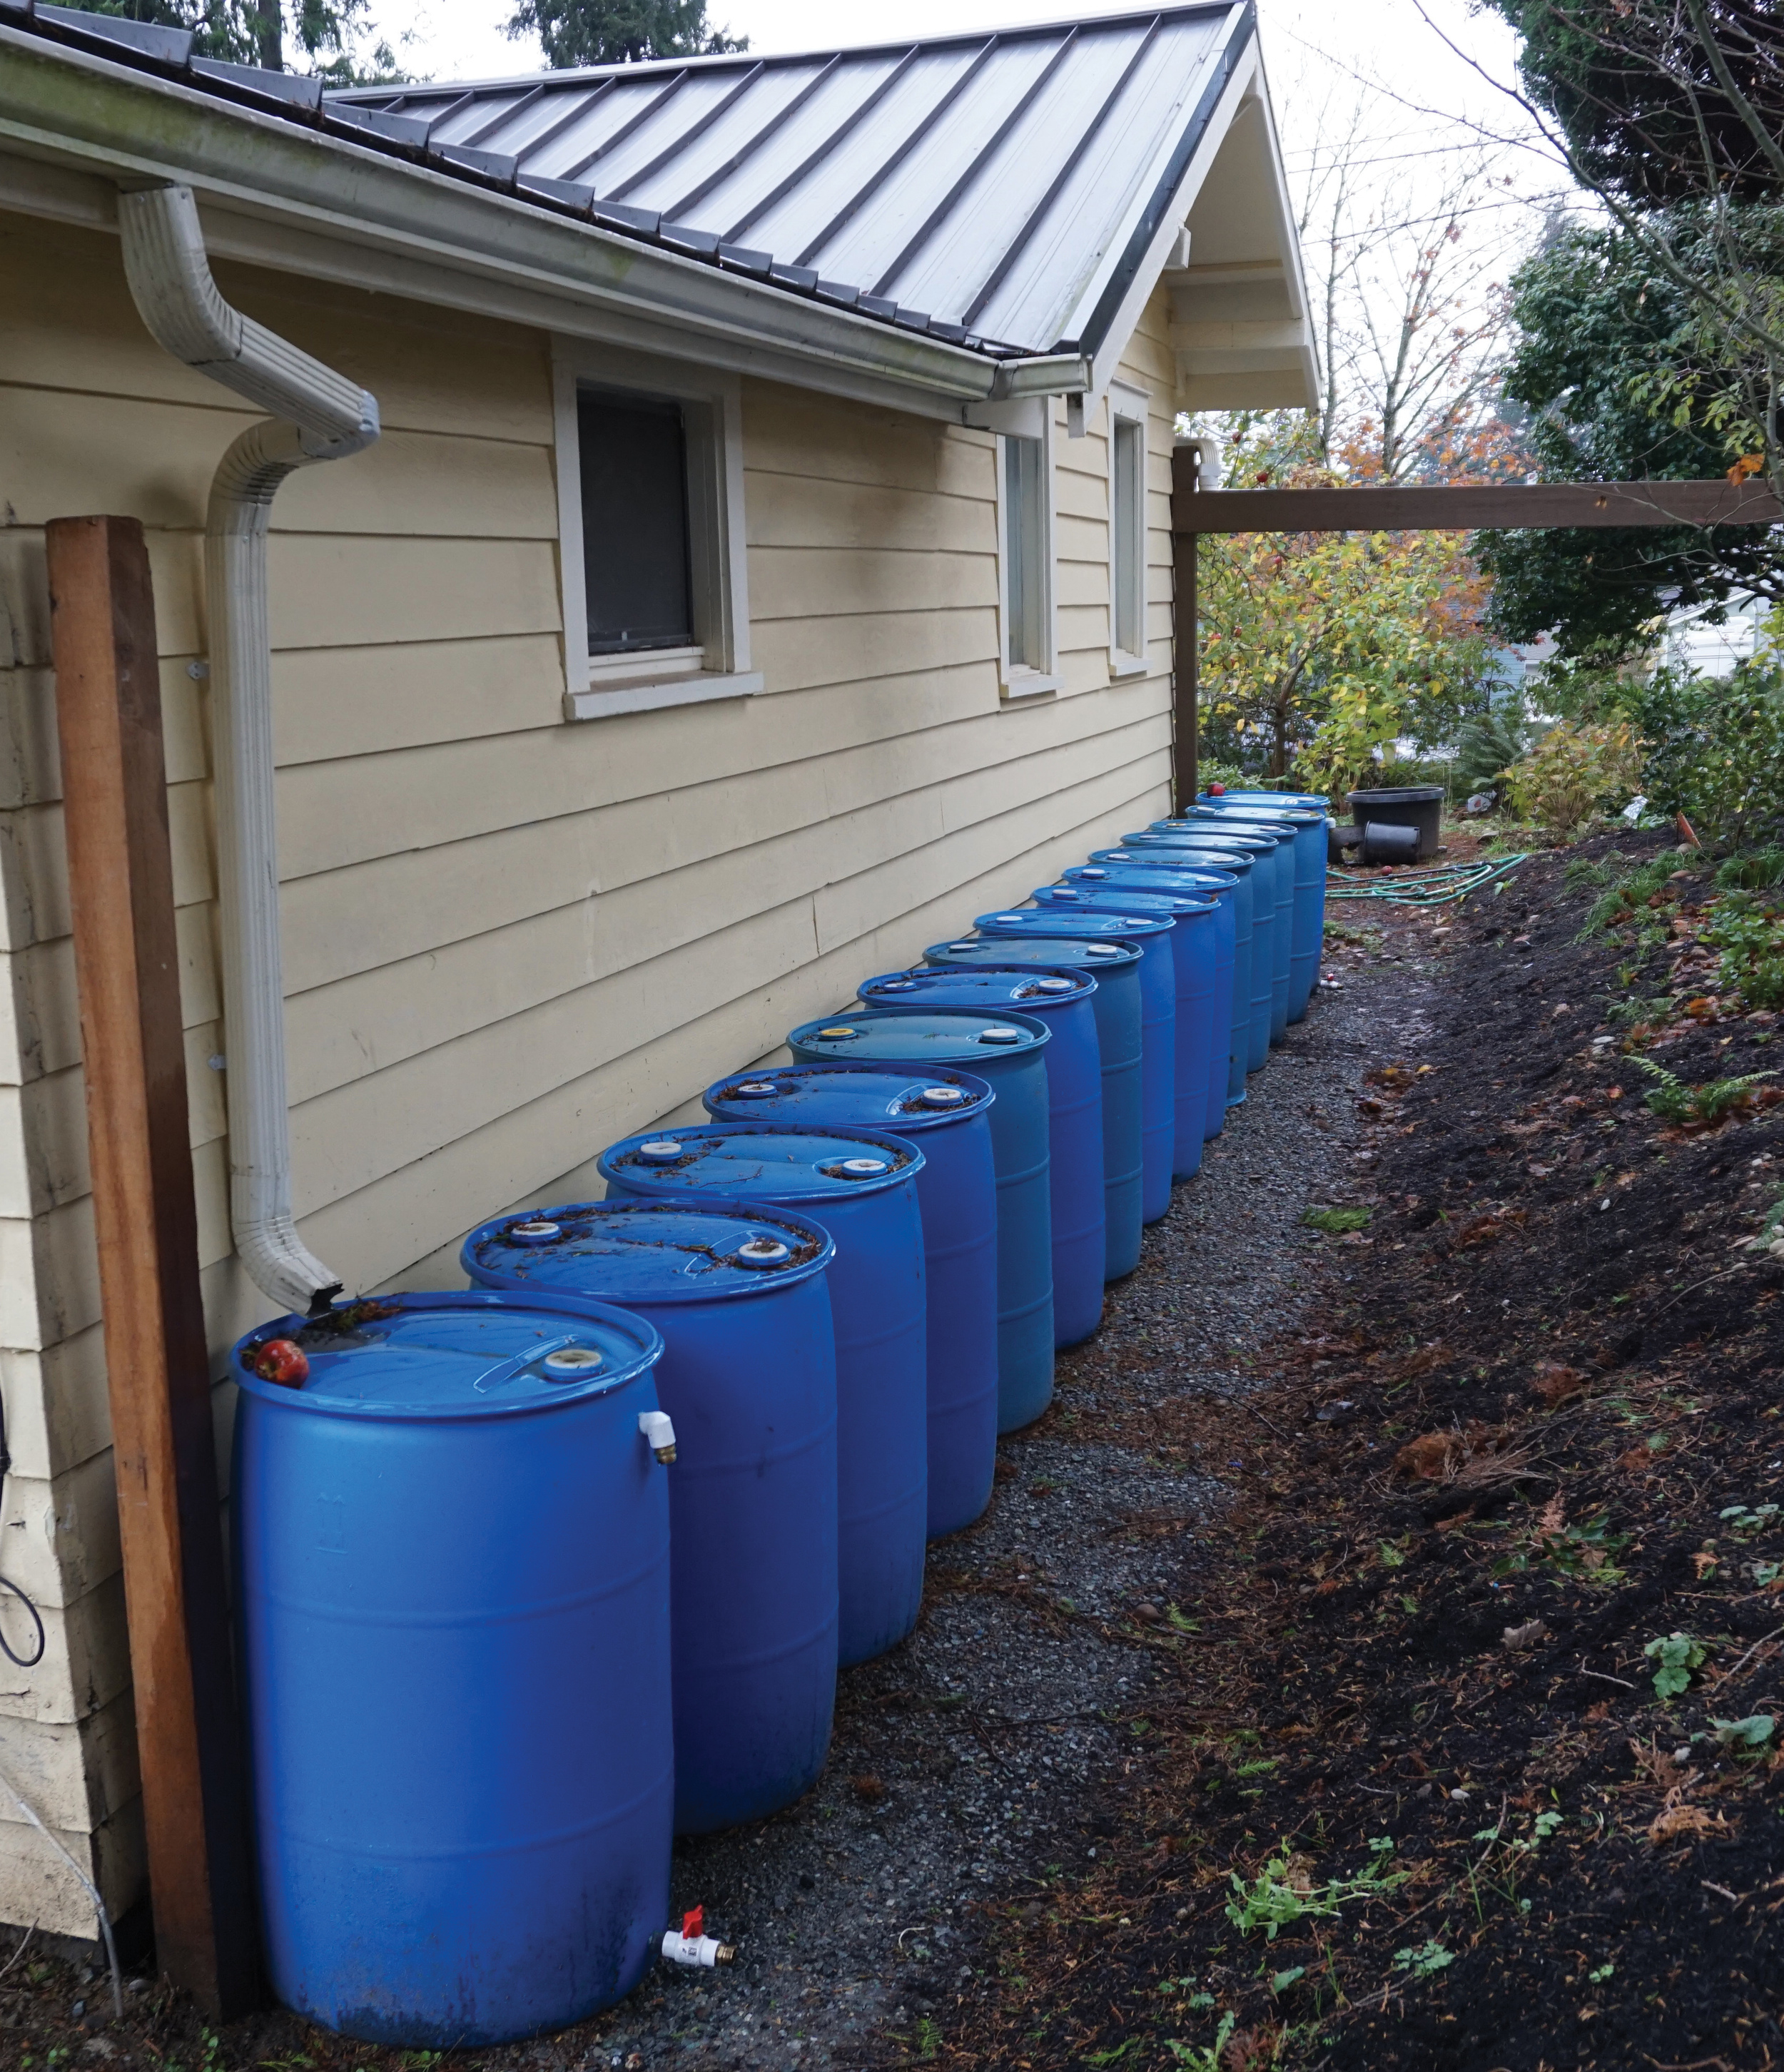 Fifteen rain barrels line the side of the Martinez-McCullough home in Everett.